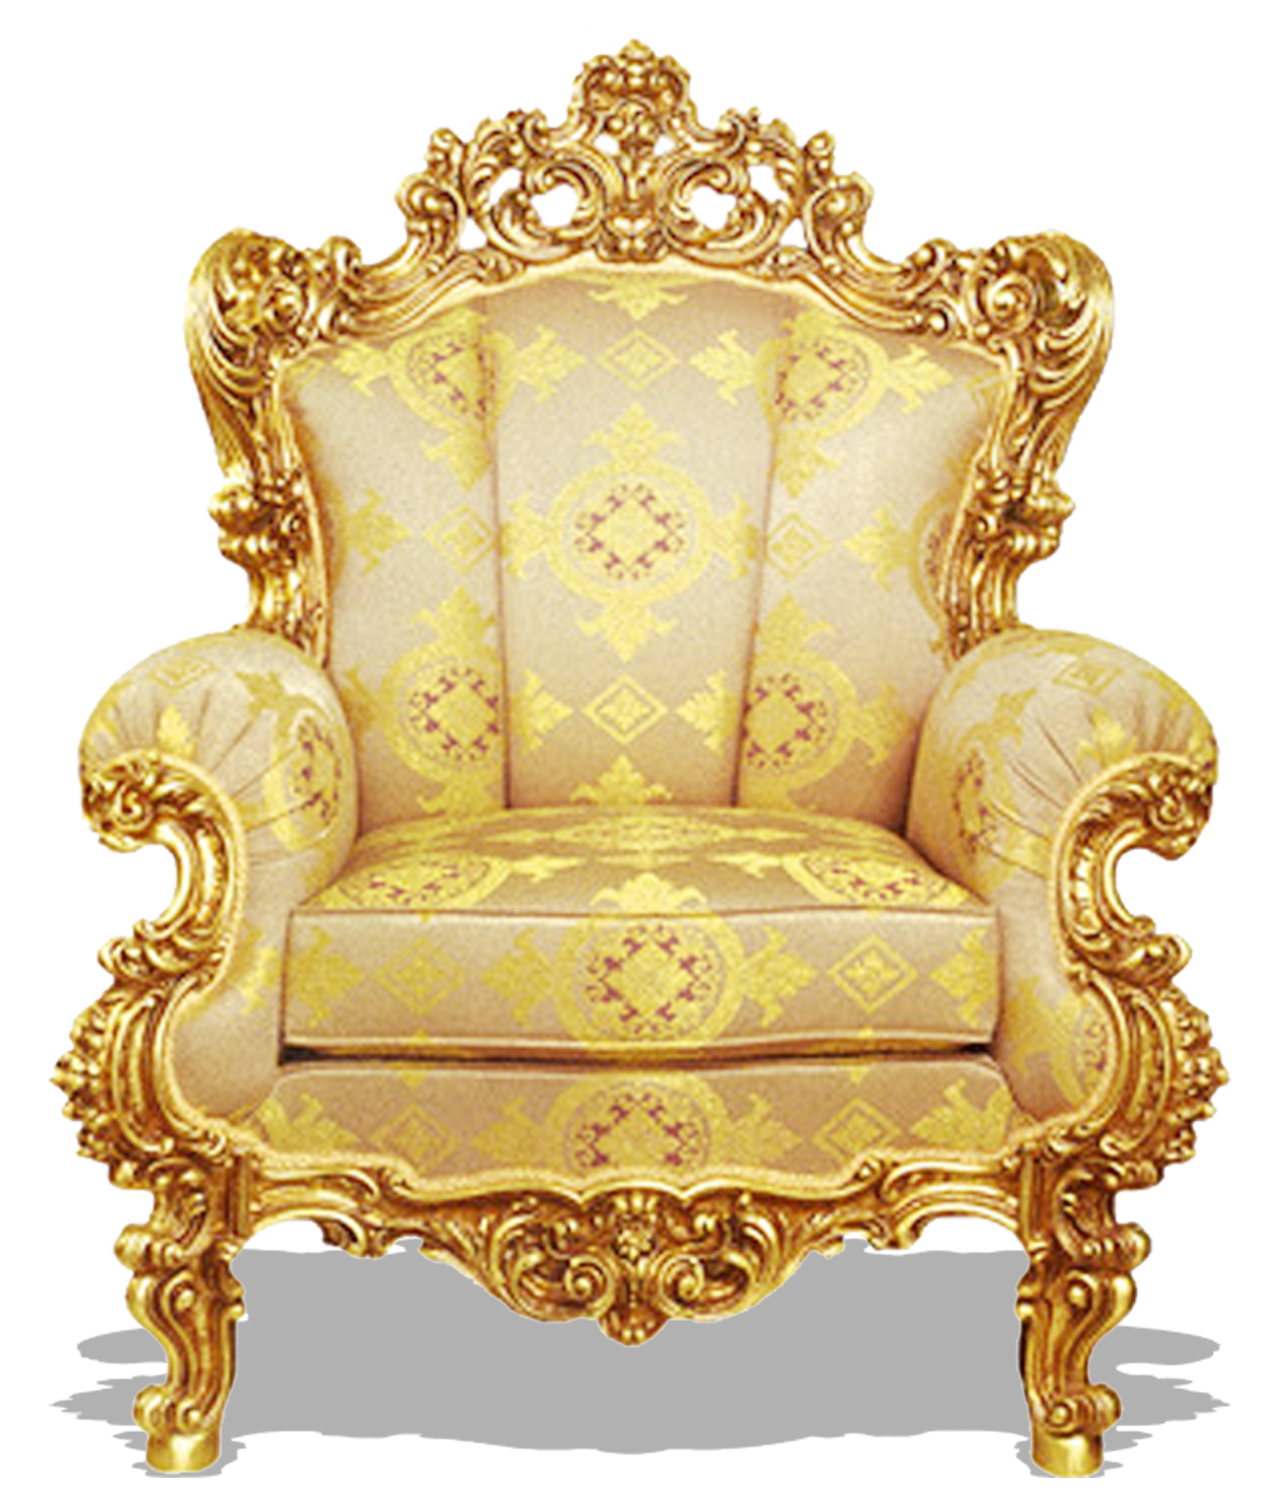 Vector furniture classic. Table chair couch gold